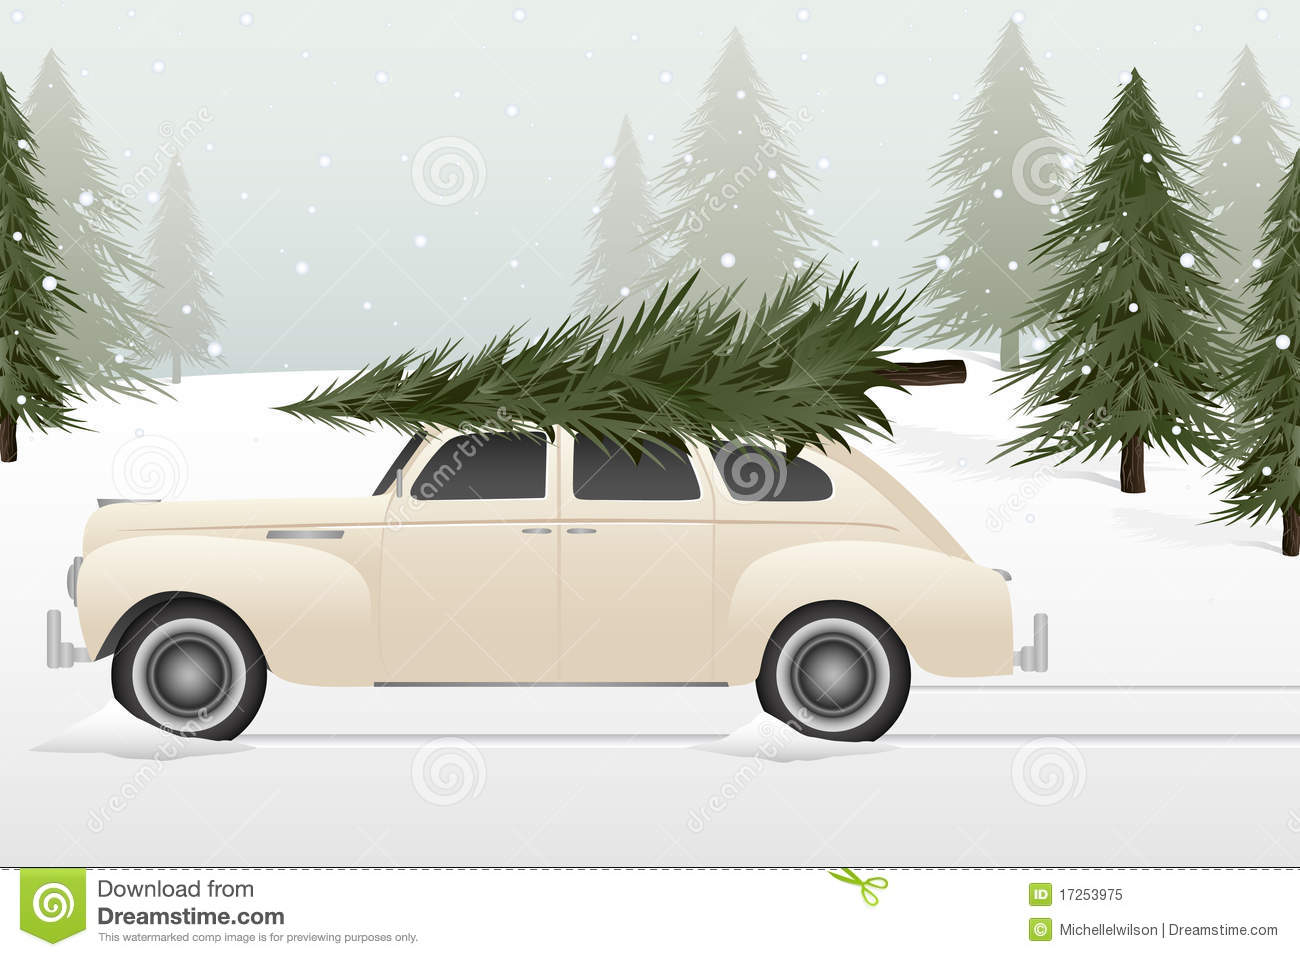 Retro Car Christmas Tree Clipart.